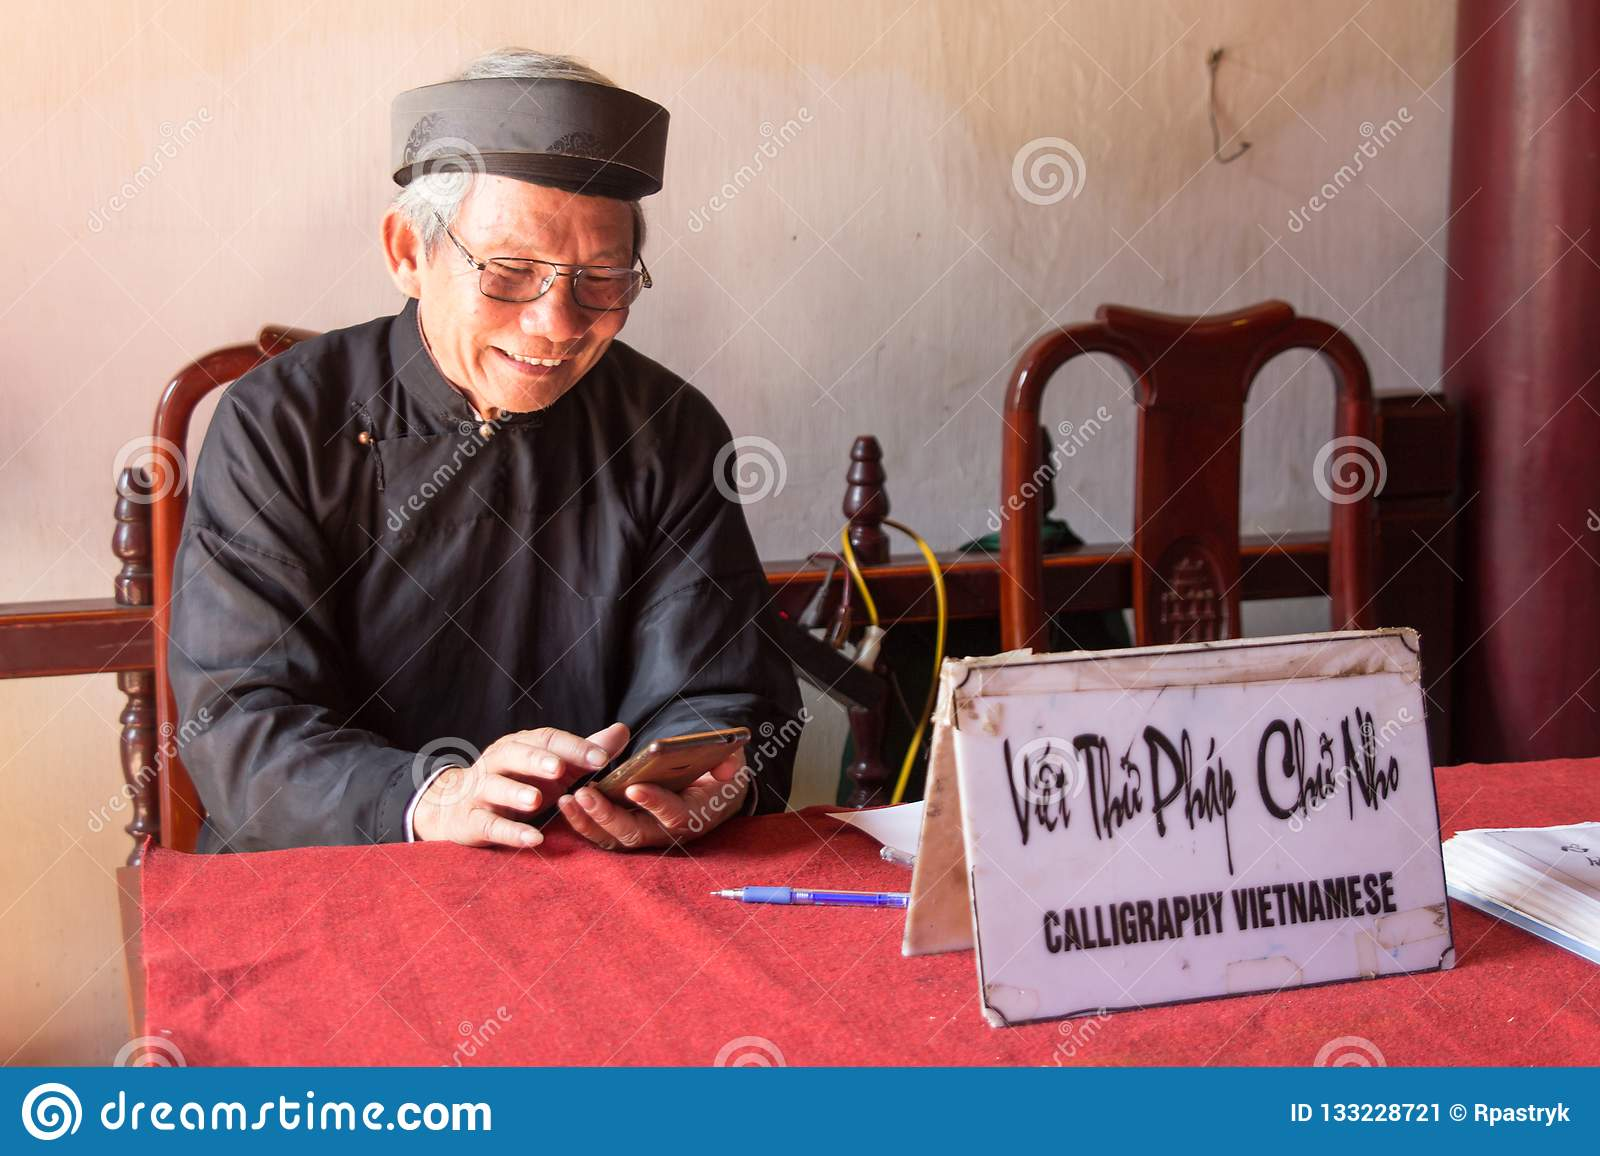 Vietnamese calligraphy lessons and services in Hanoi